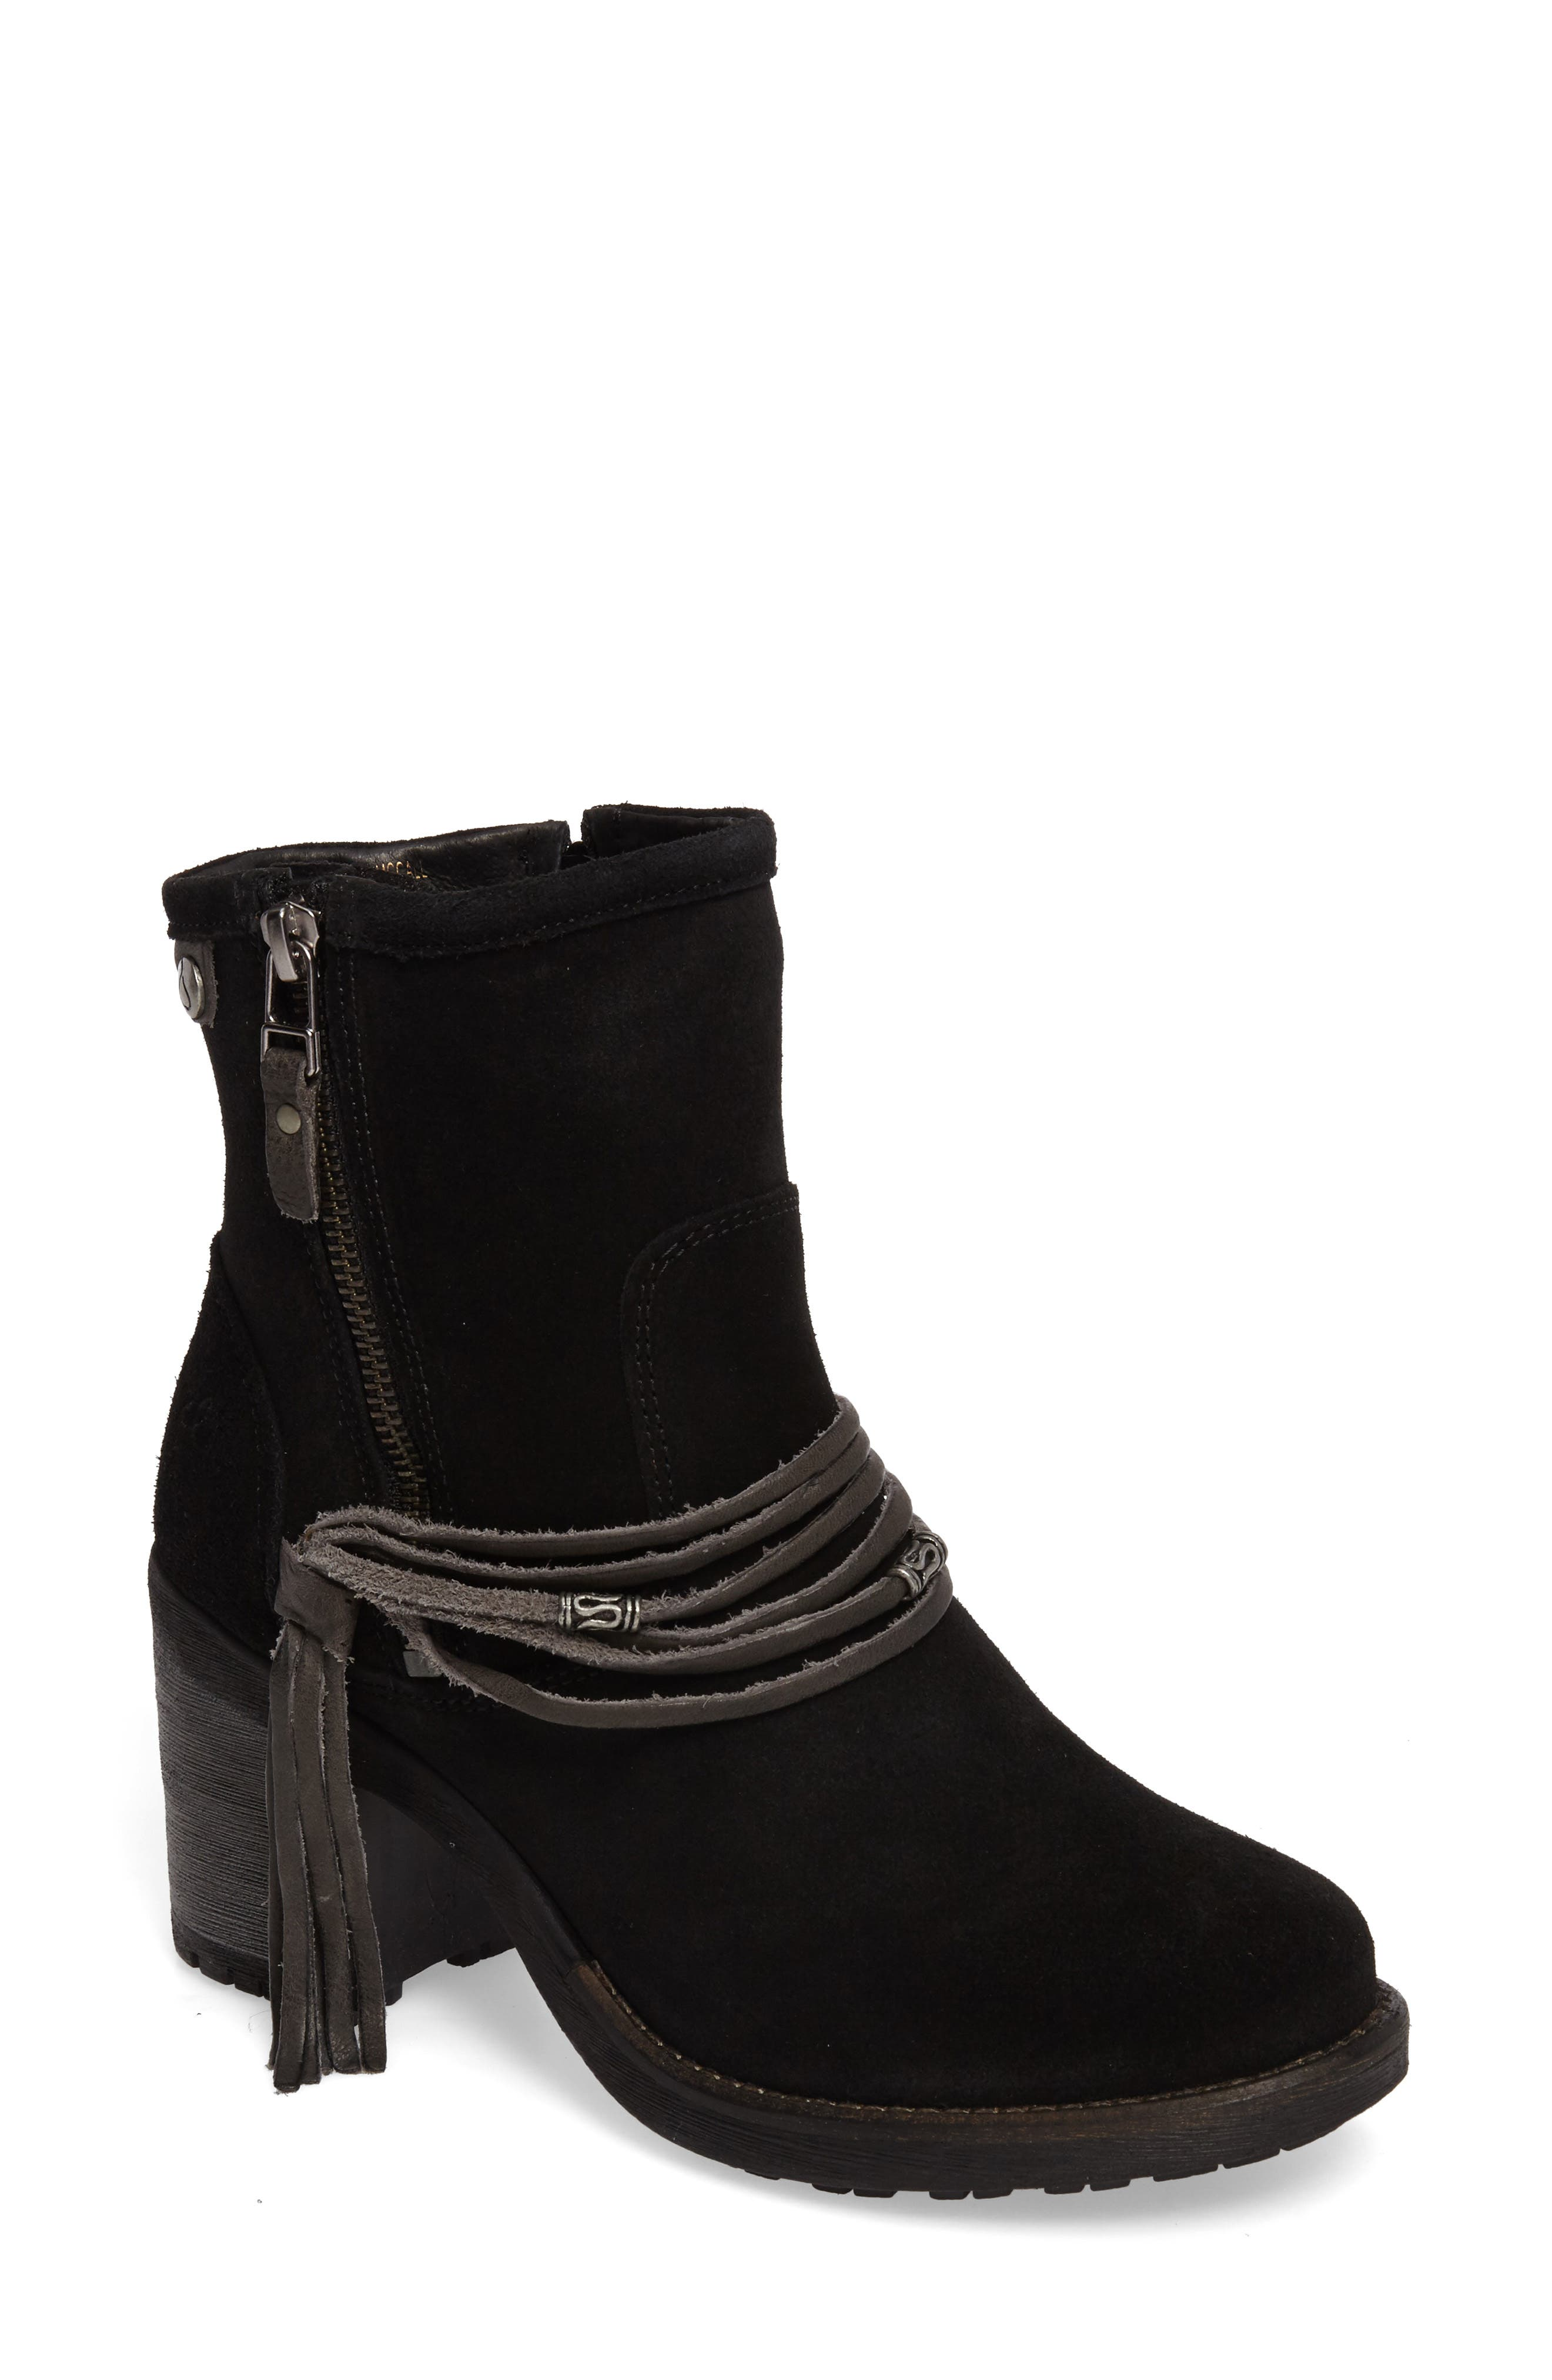 Alternate Image 1 Selected - Bos. & Co. McCall Waterproof Boot (Women)